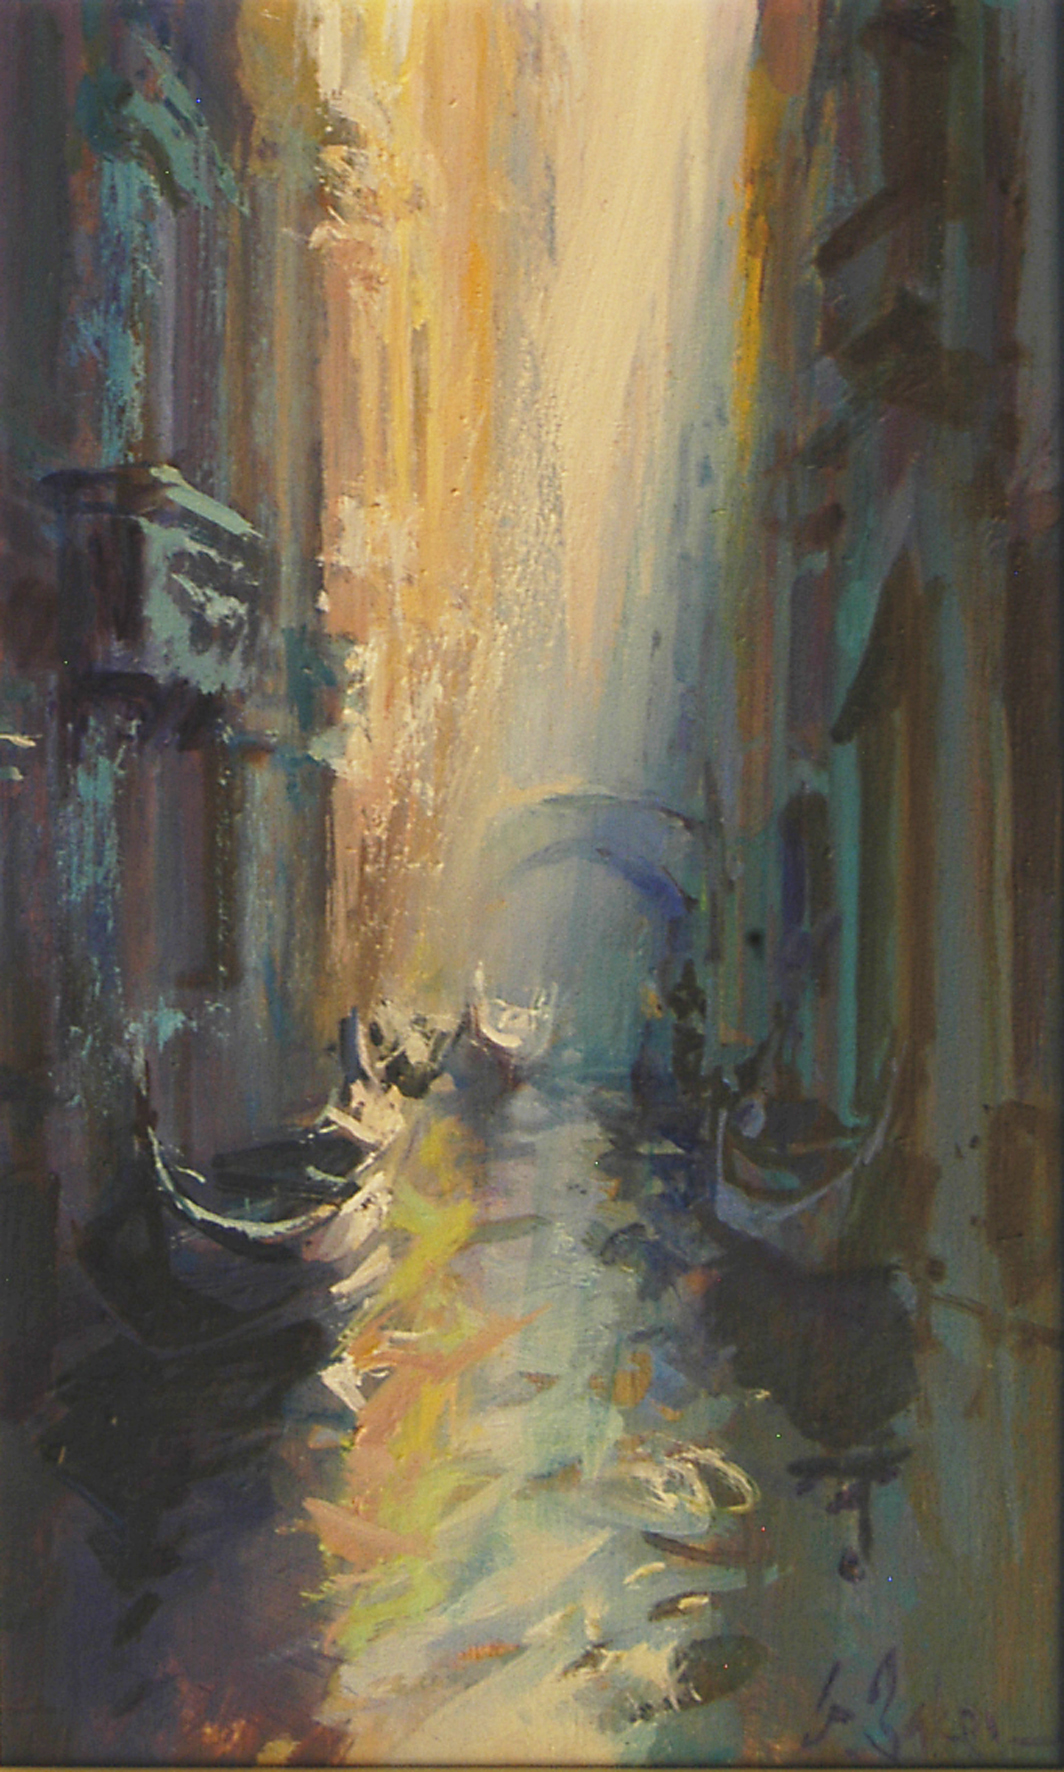 Blue Corridor - oil on board - 40 x 25 cm - SOLD